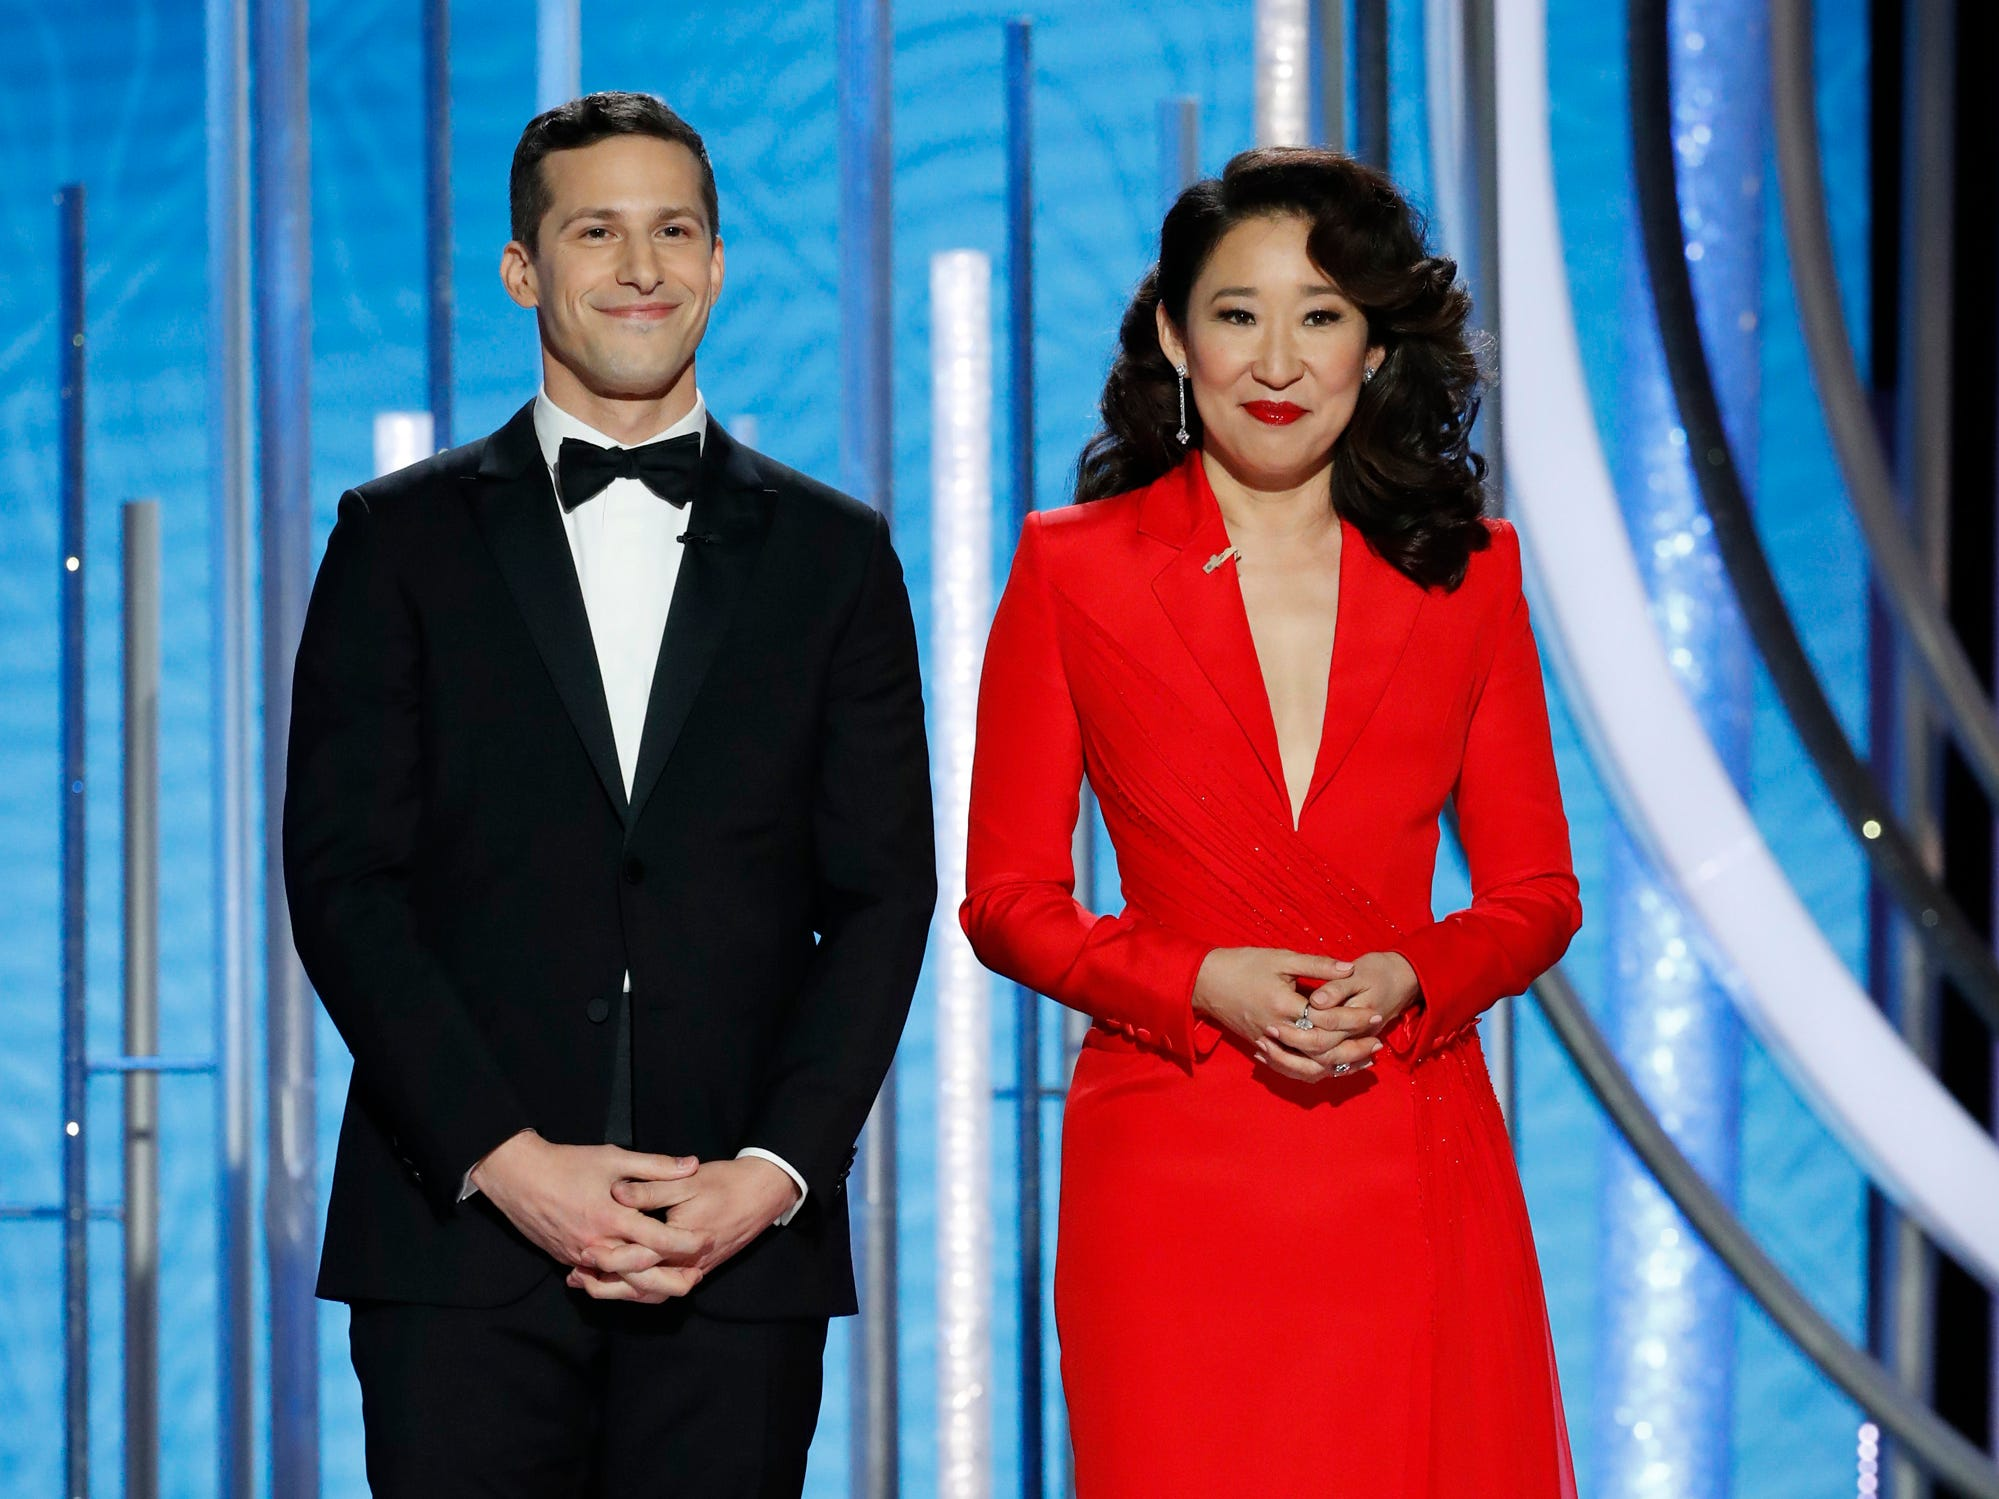 Andy Samberg and Sandra Oh host the 76th Golden Globe Awards.